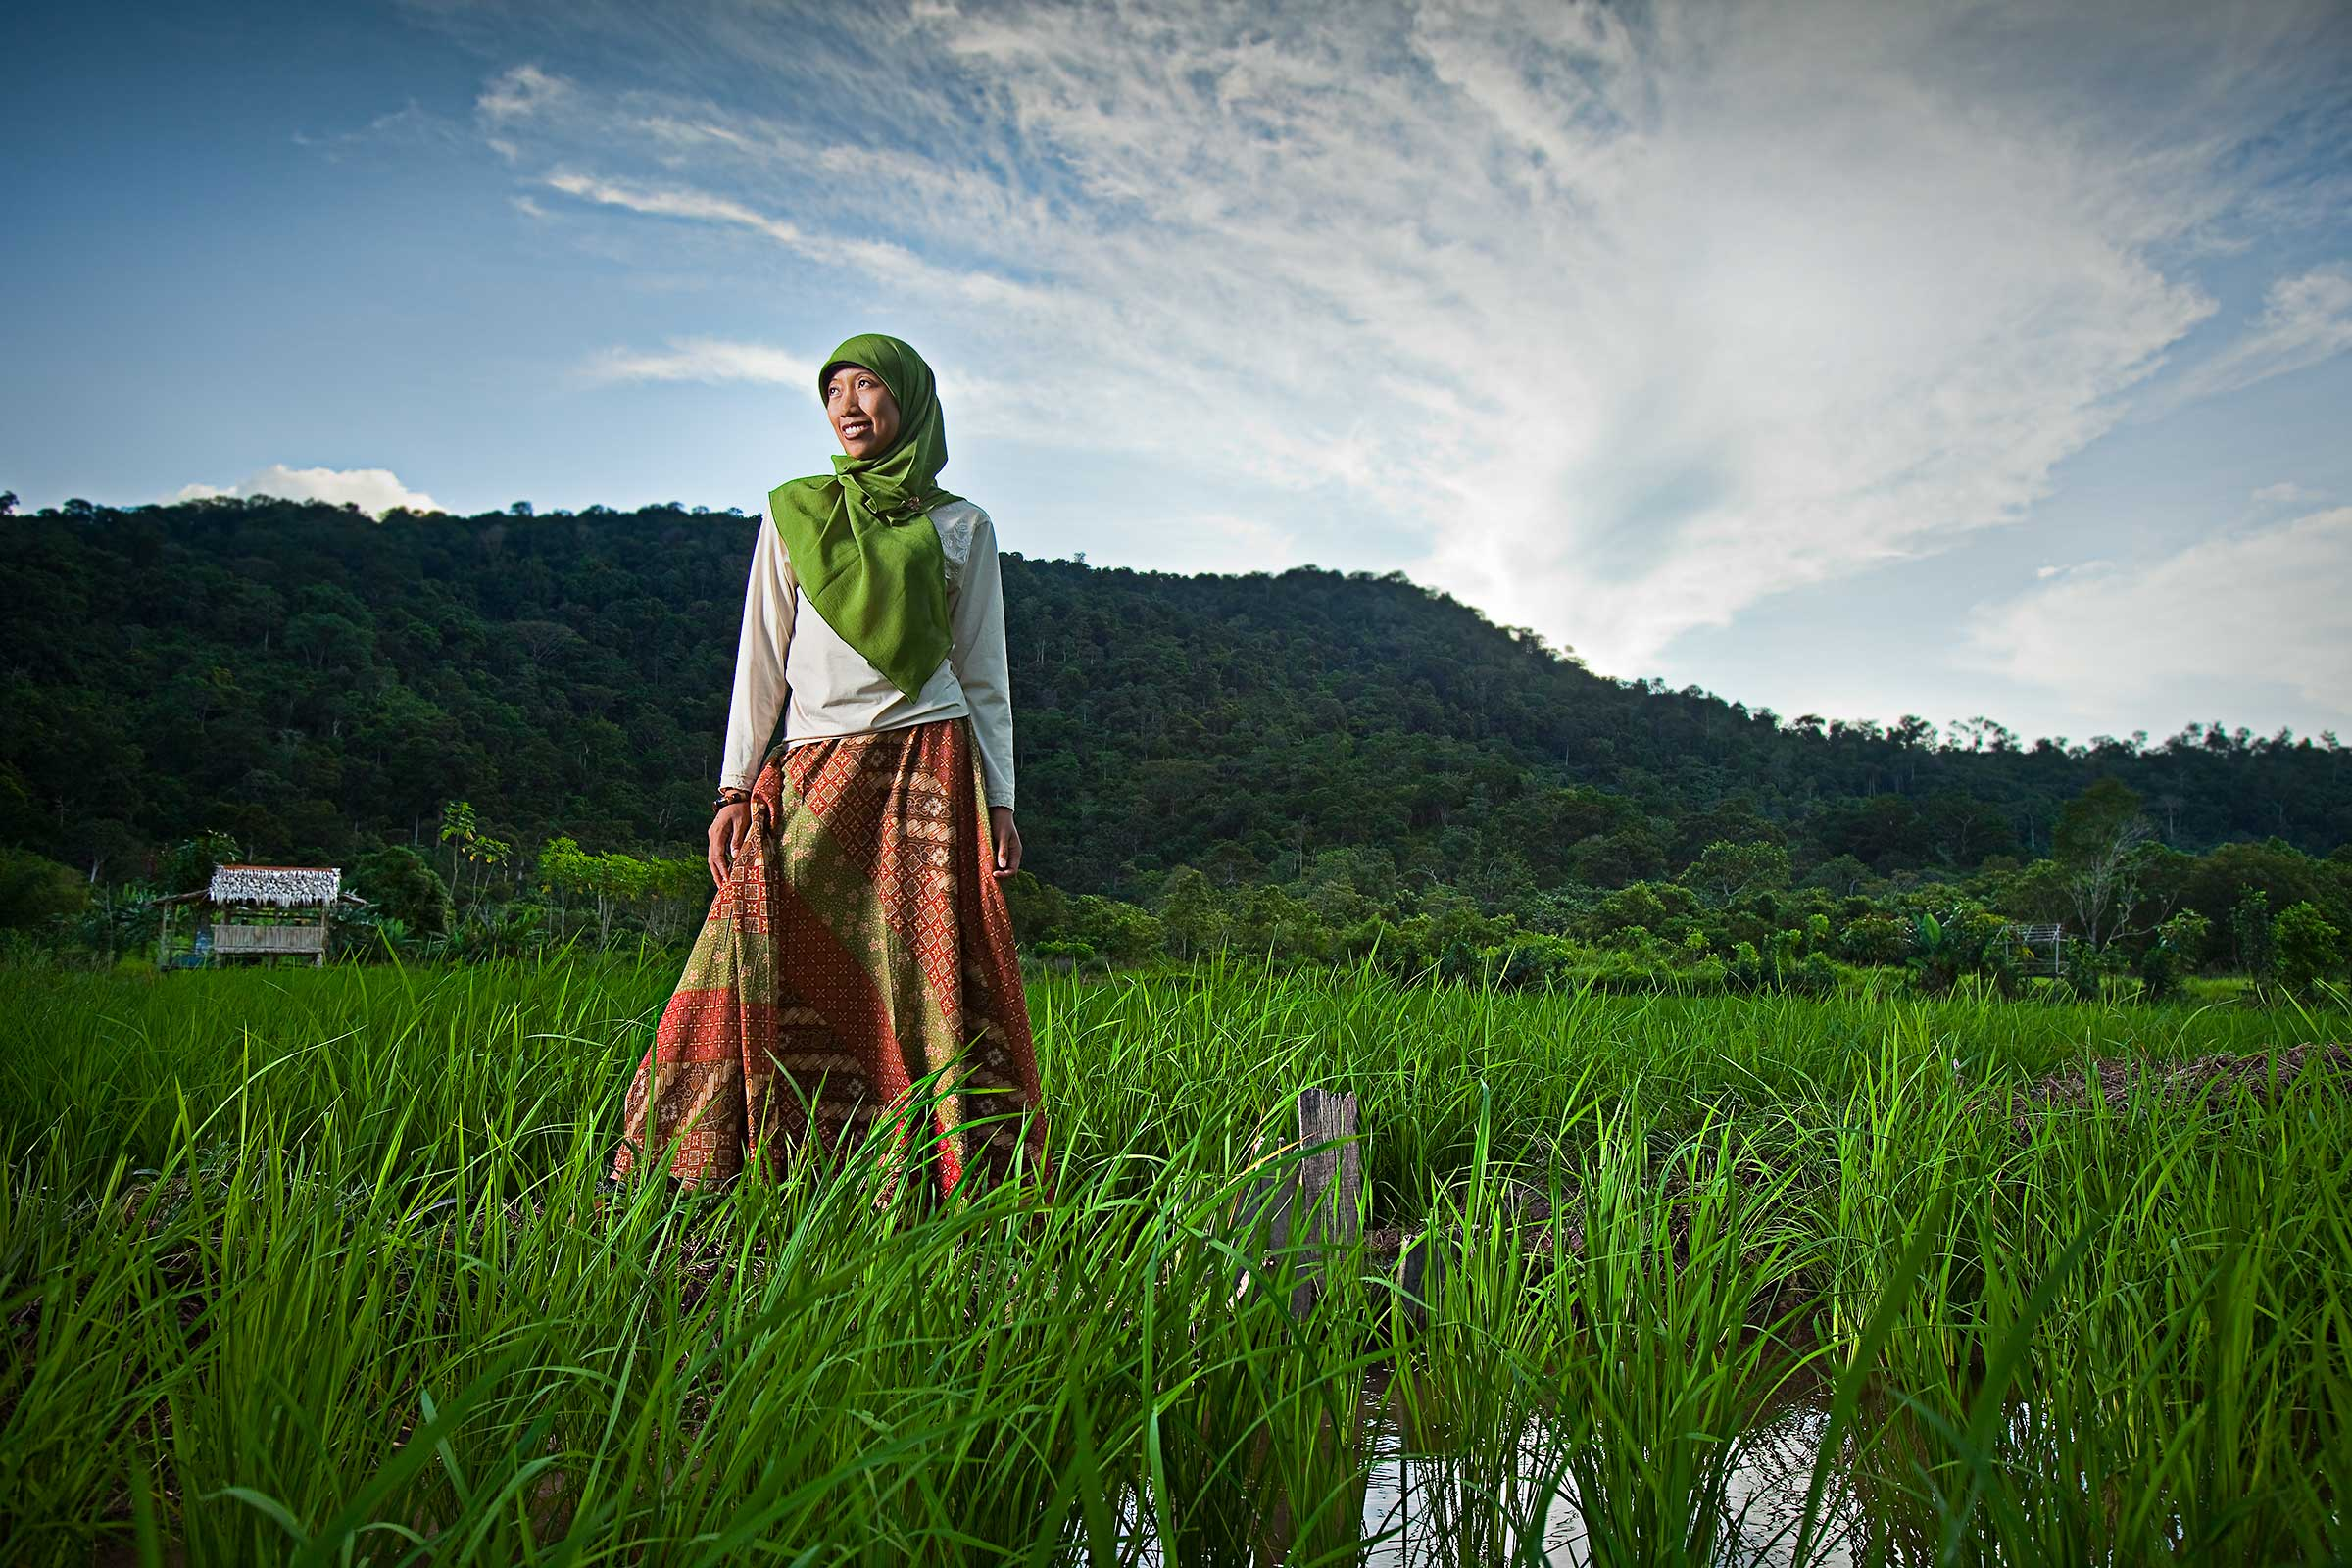 a woman in beautiful traditional muslim clothing poses among rice paddies in Kalimantan Indonesia